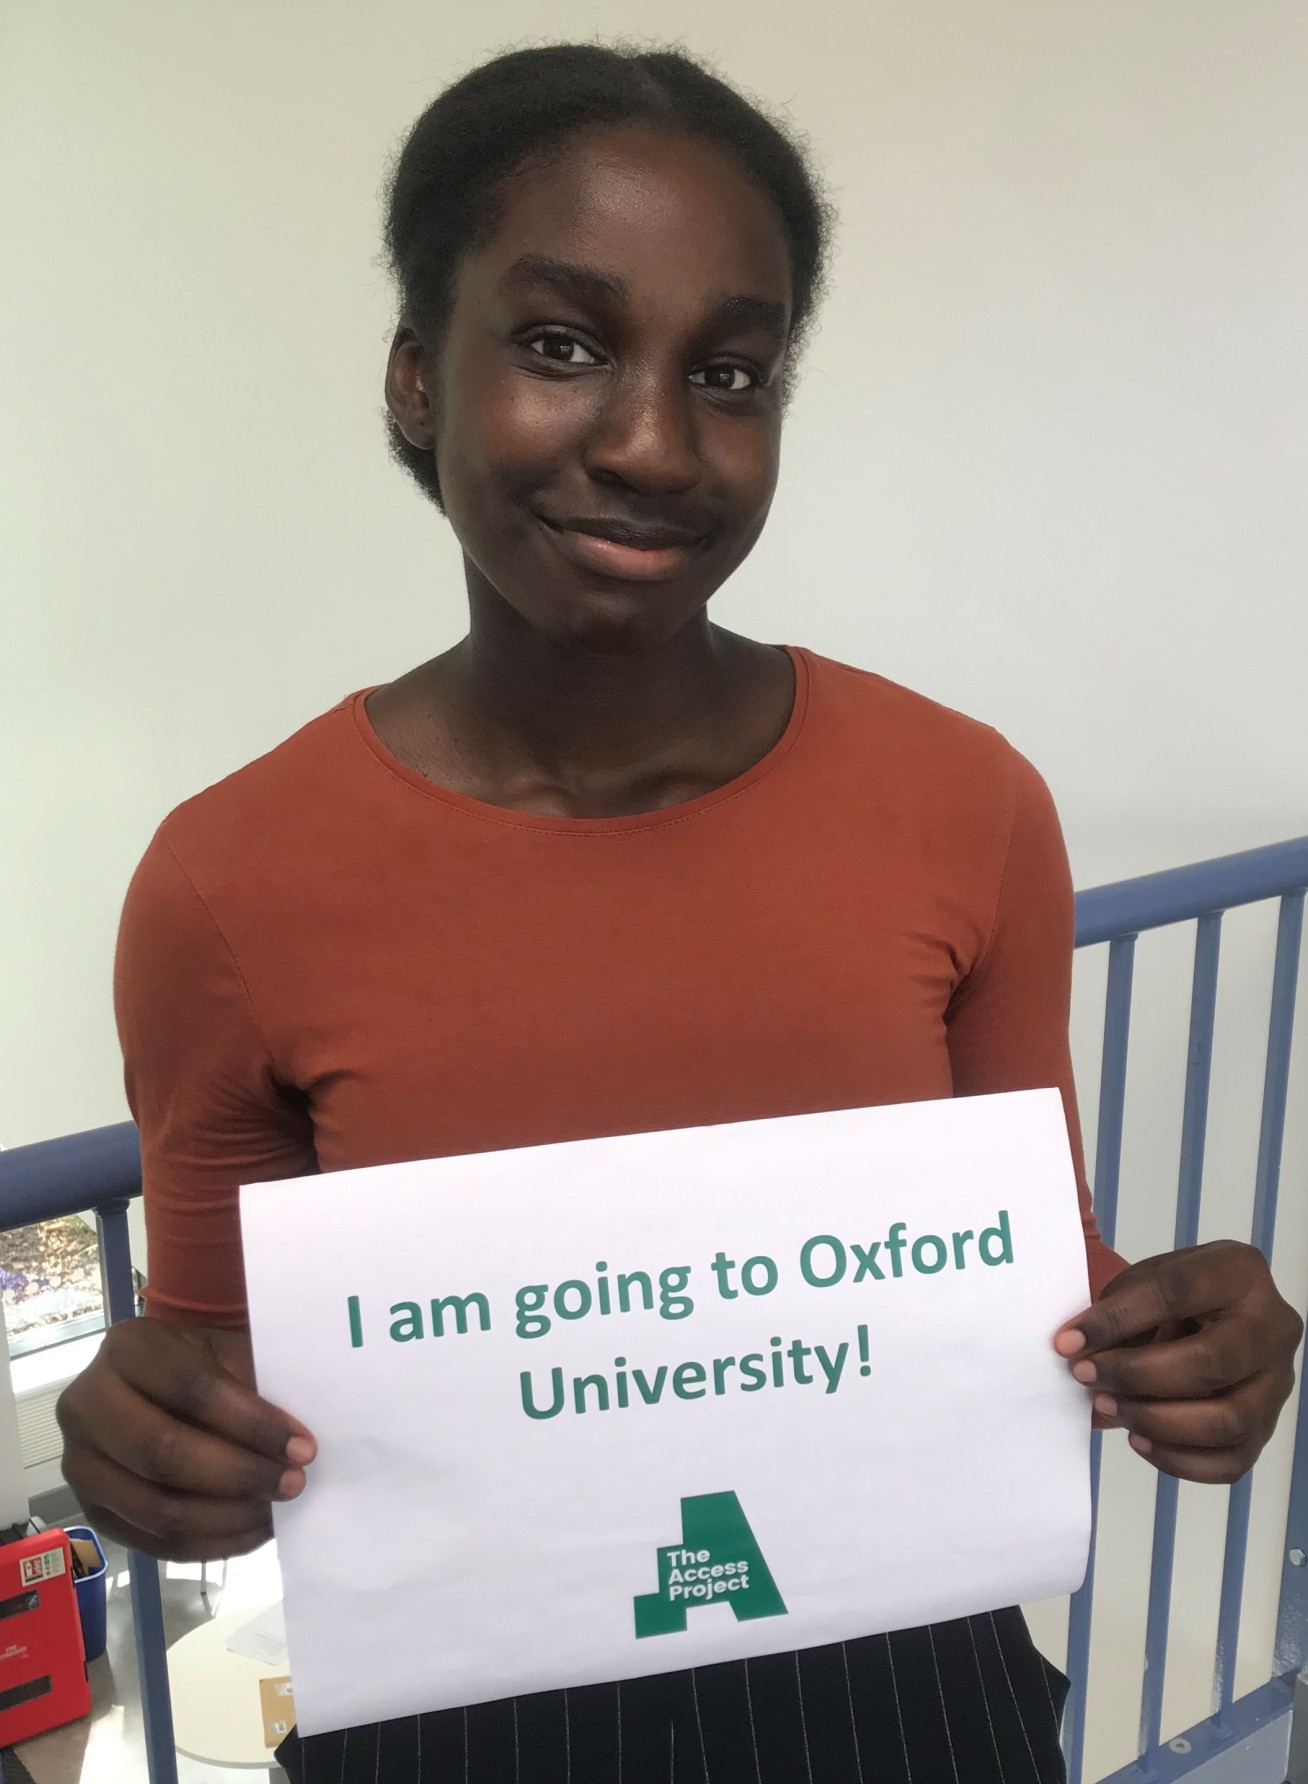 Girl holding a sign that says: 'I am going to Oxford University!'